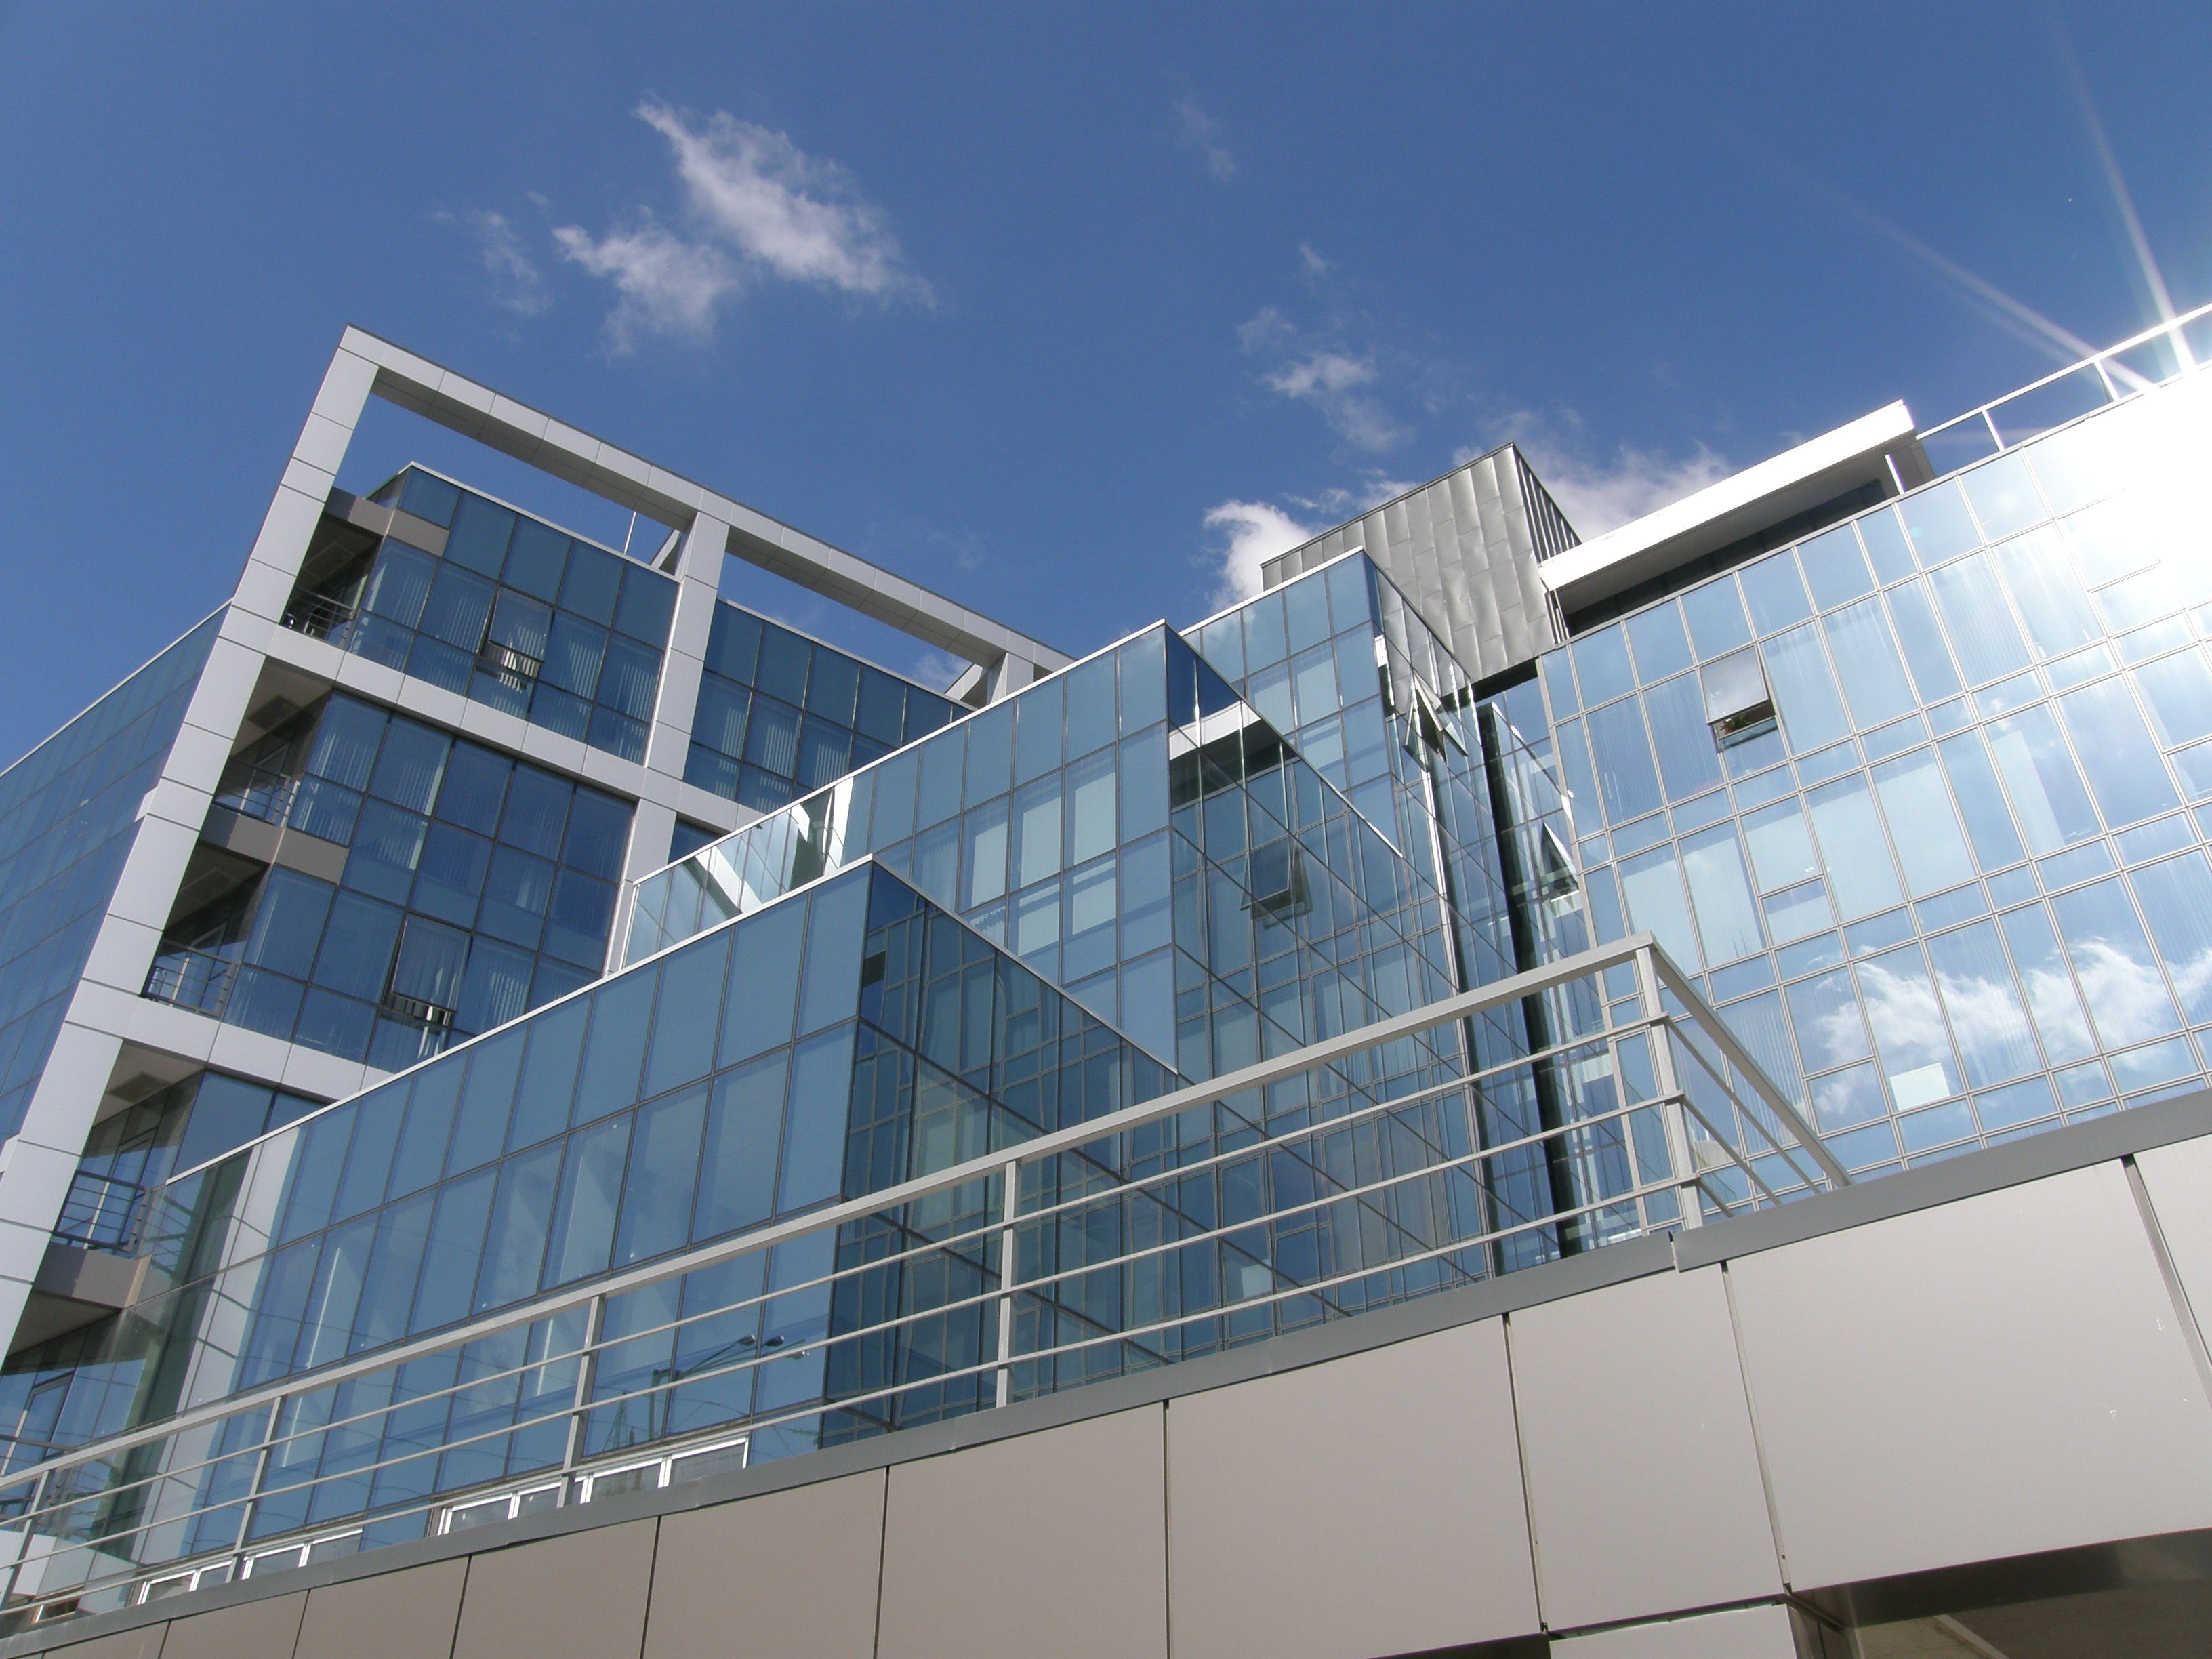 Free stock photo of building, glass, architecture, modern